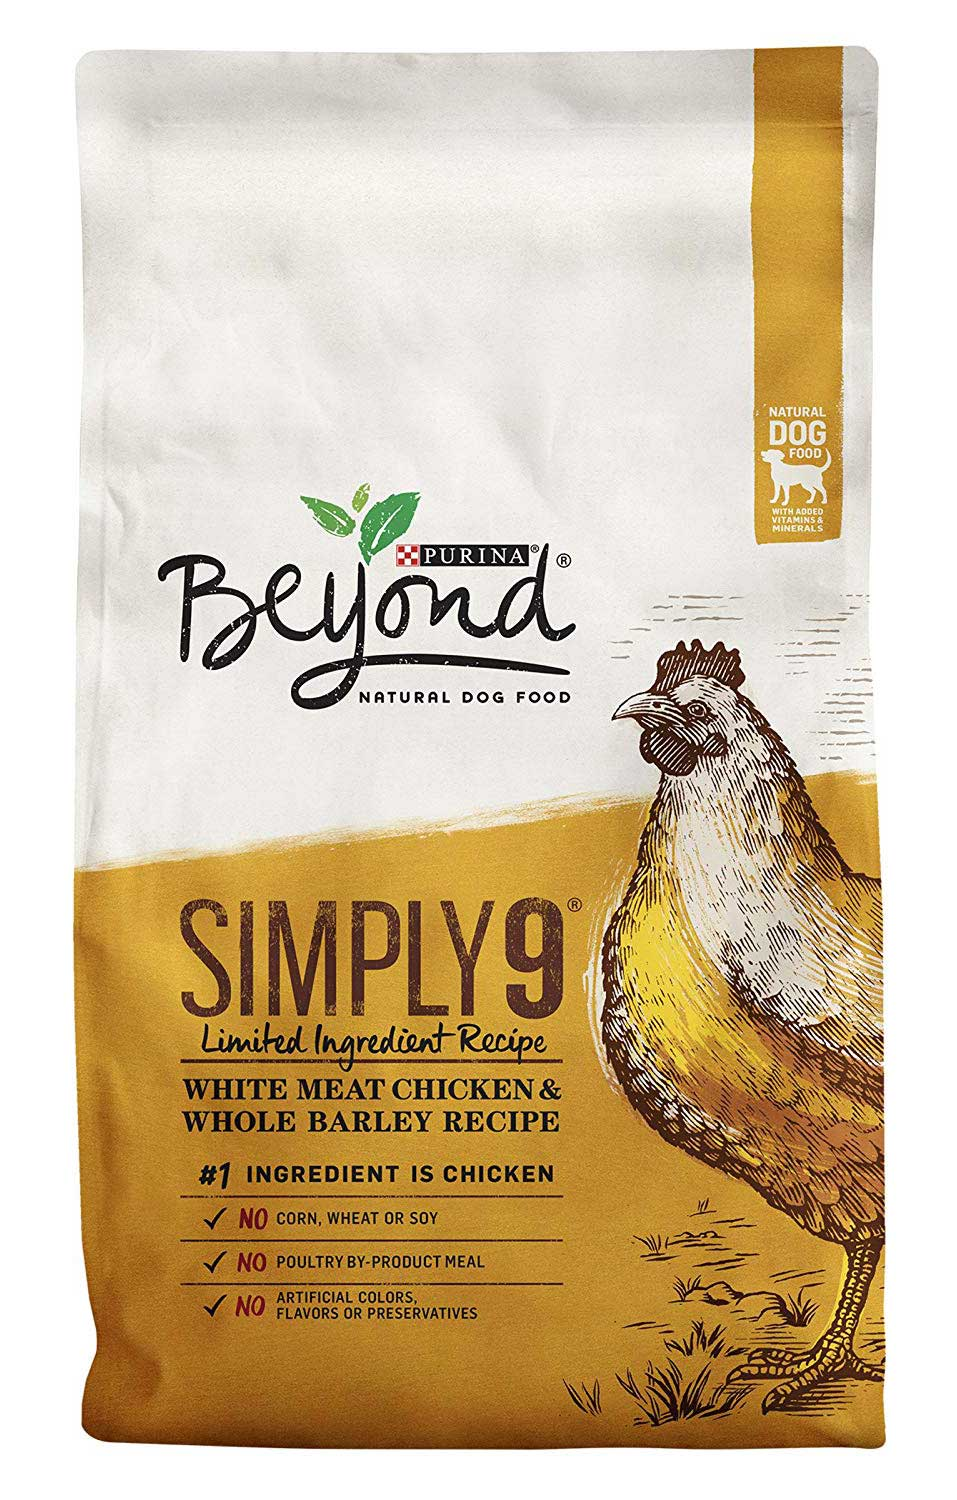 Purina Beyond Simply 9 Adult Dry Dog Food